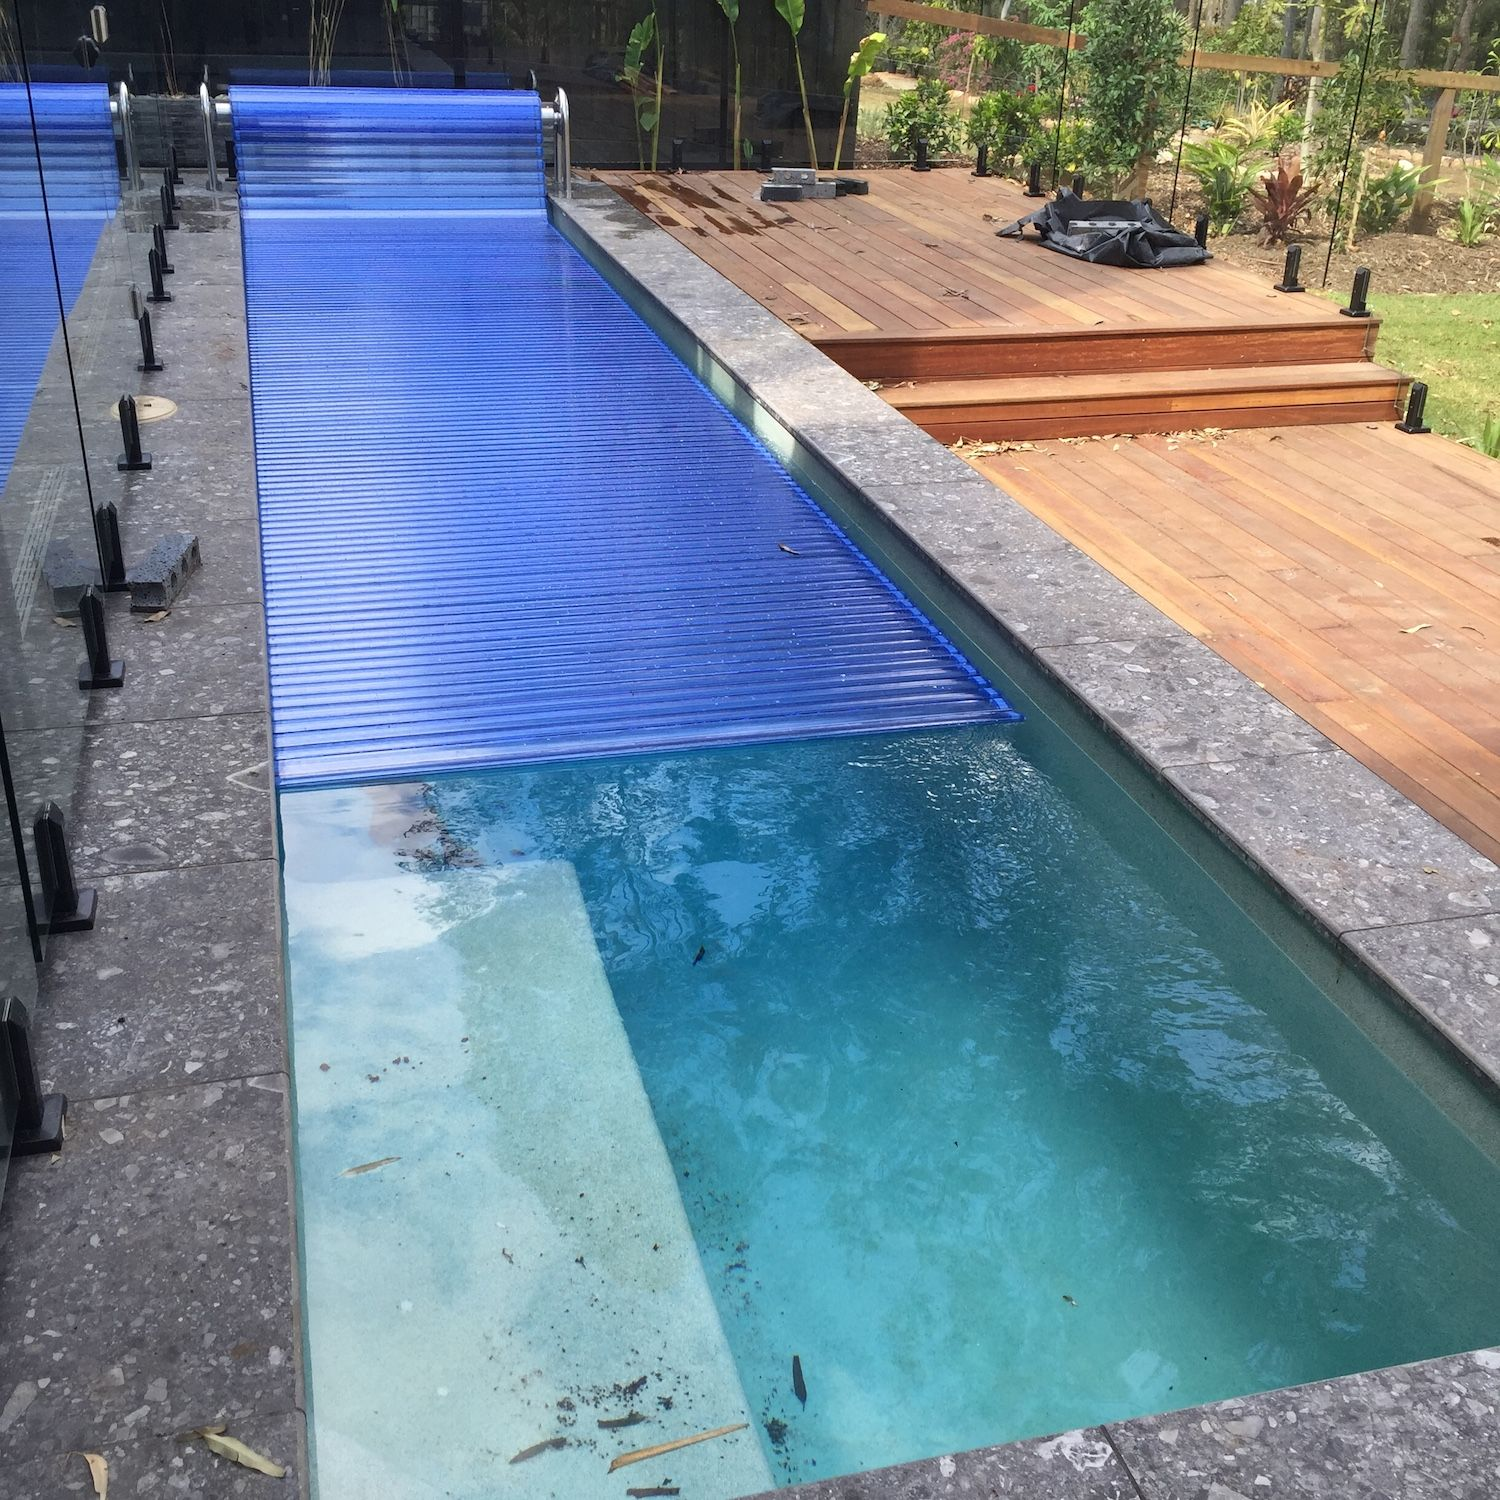 Remco AGT Swimroll swimming pool cover installed @ Underwood | Pool ...